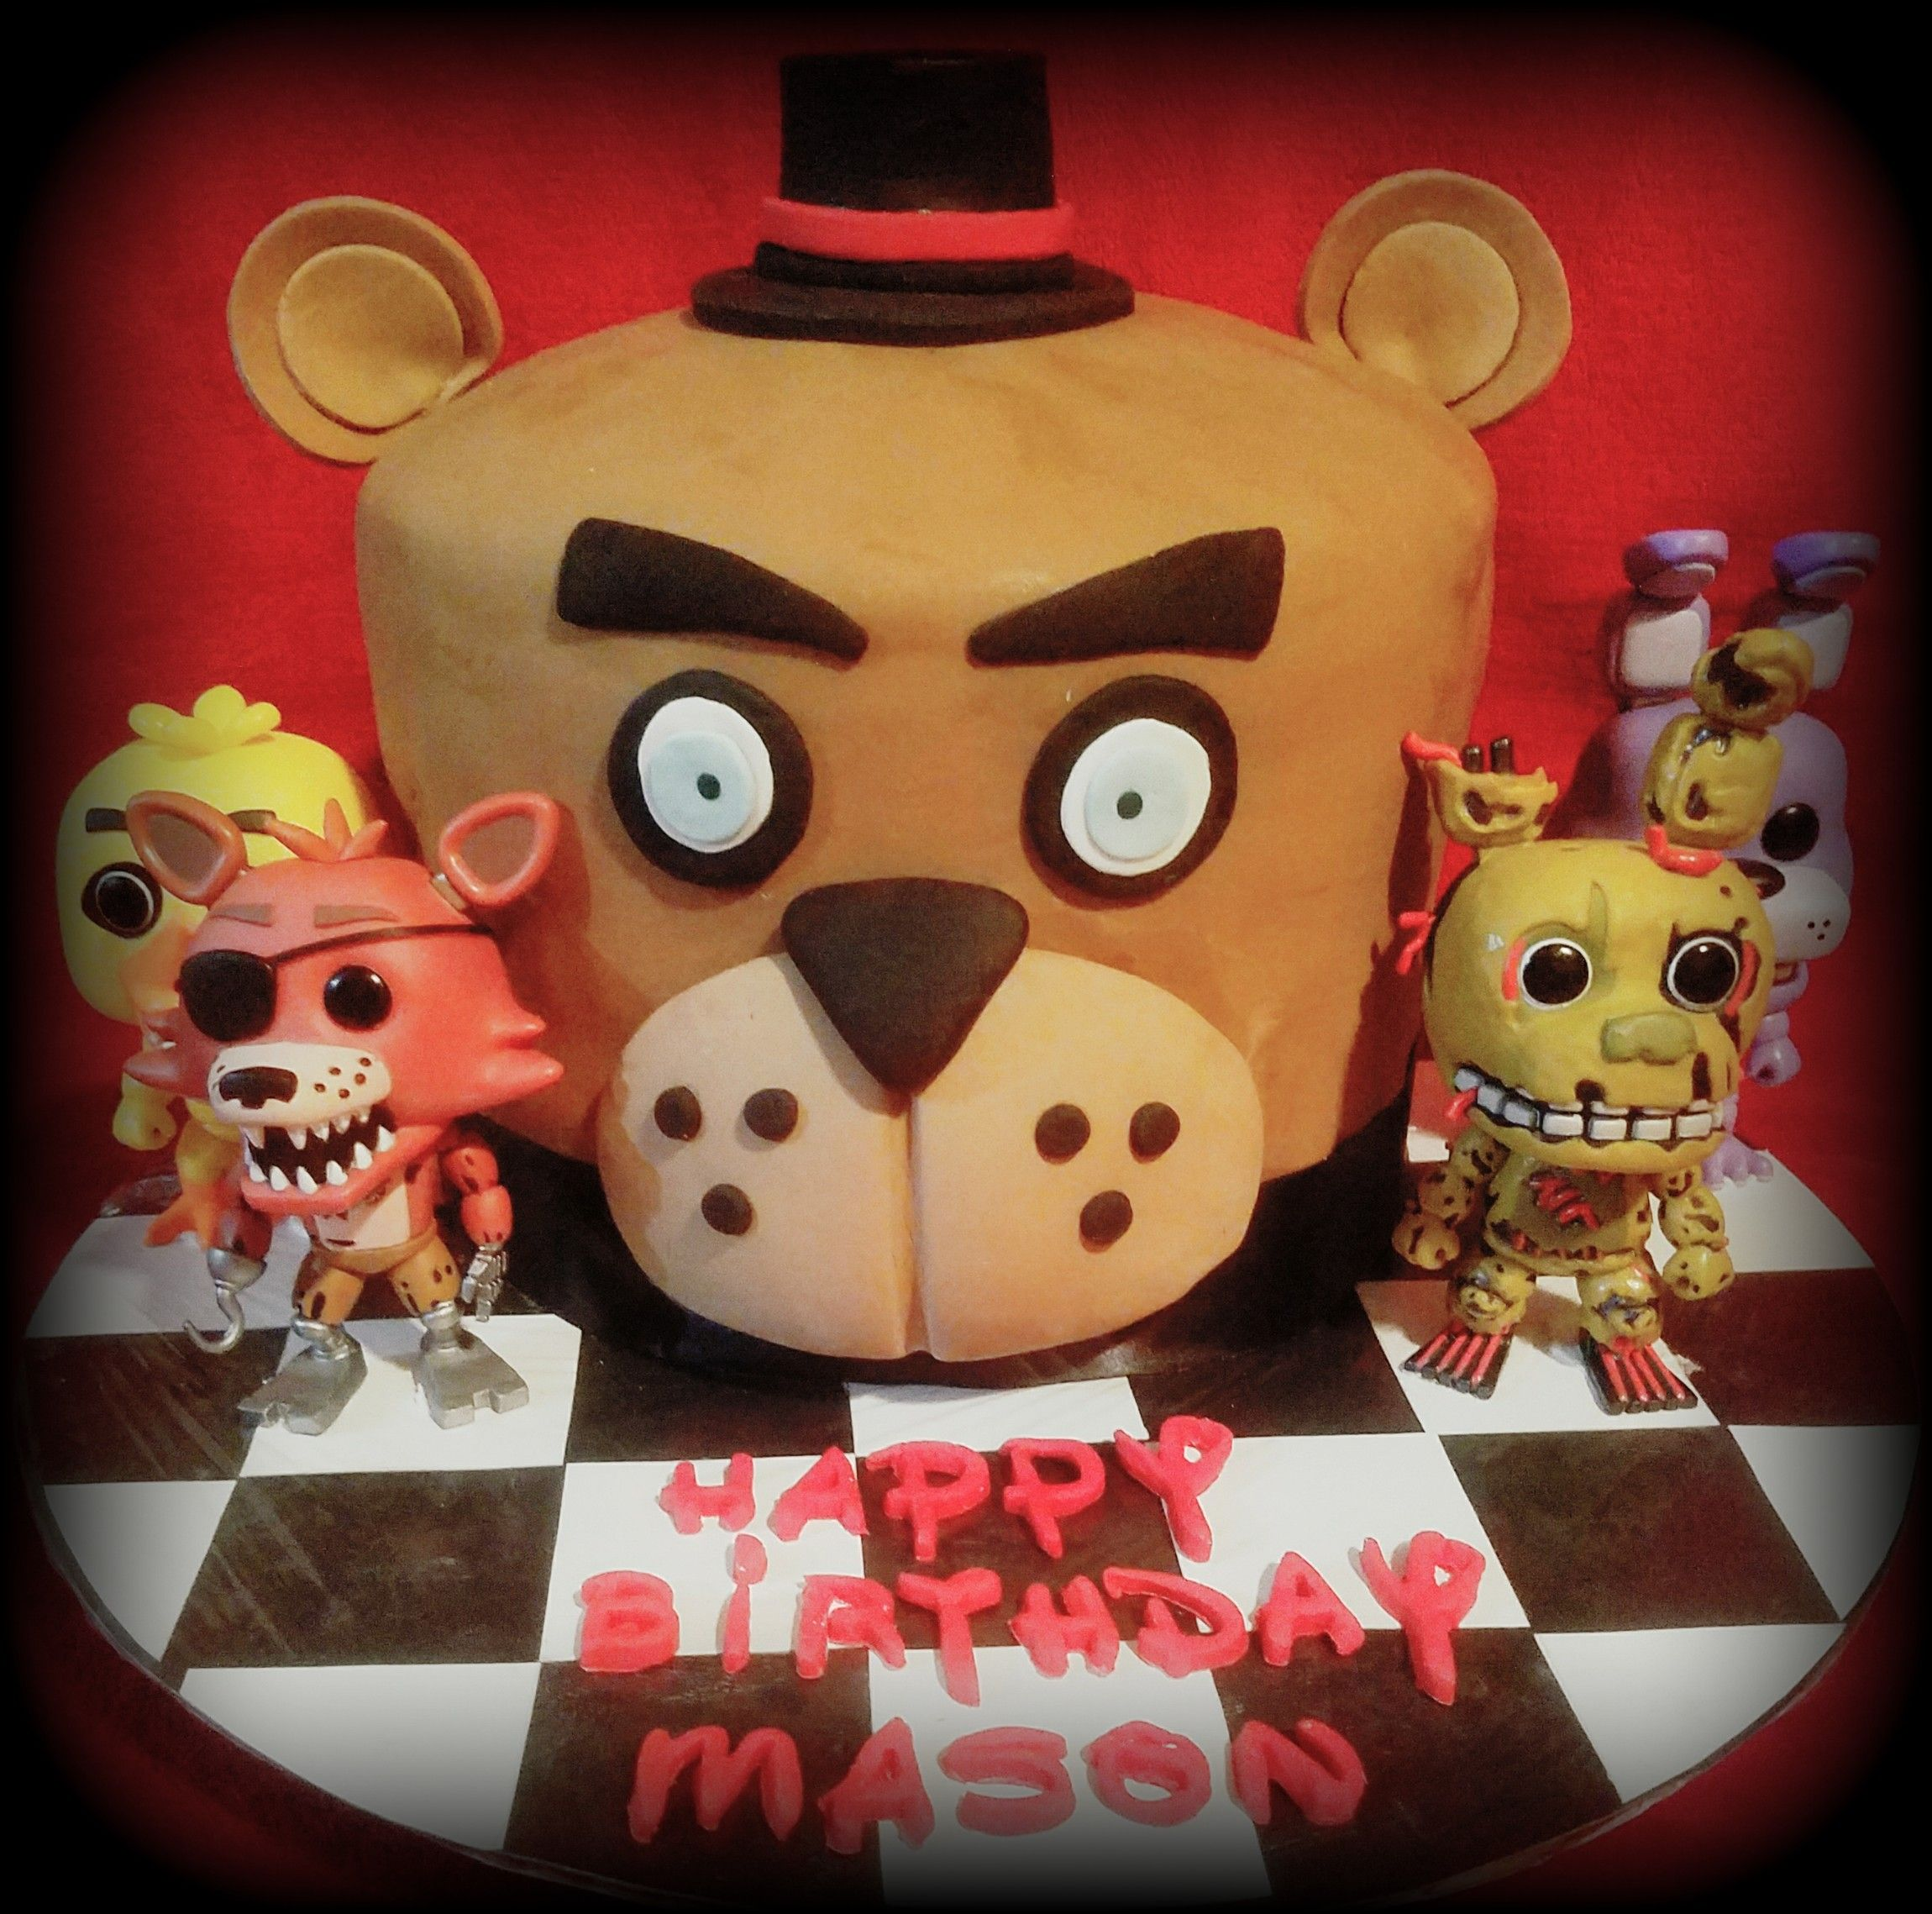 Five nights at Freddy's cake Christmas ornaments